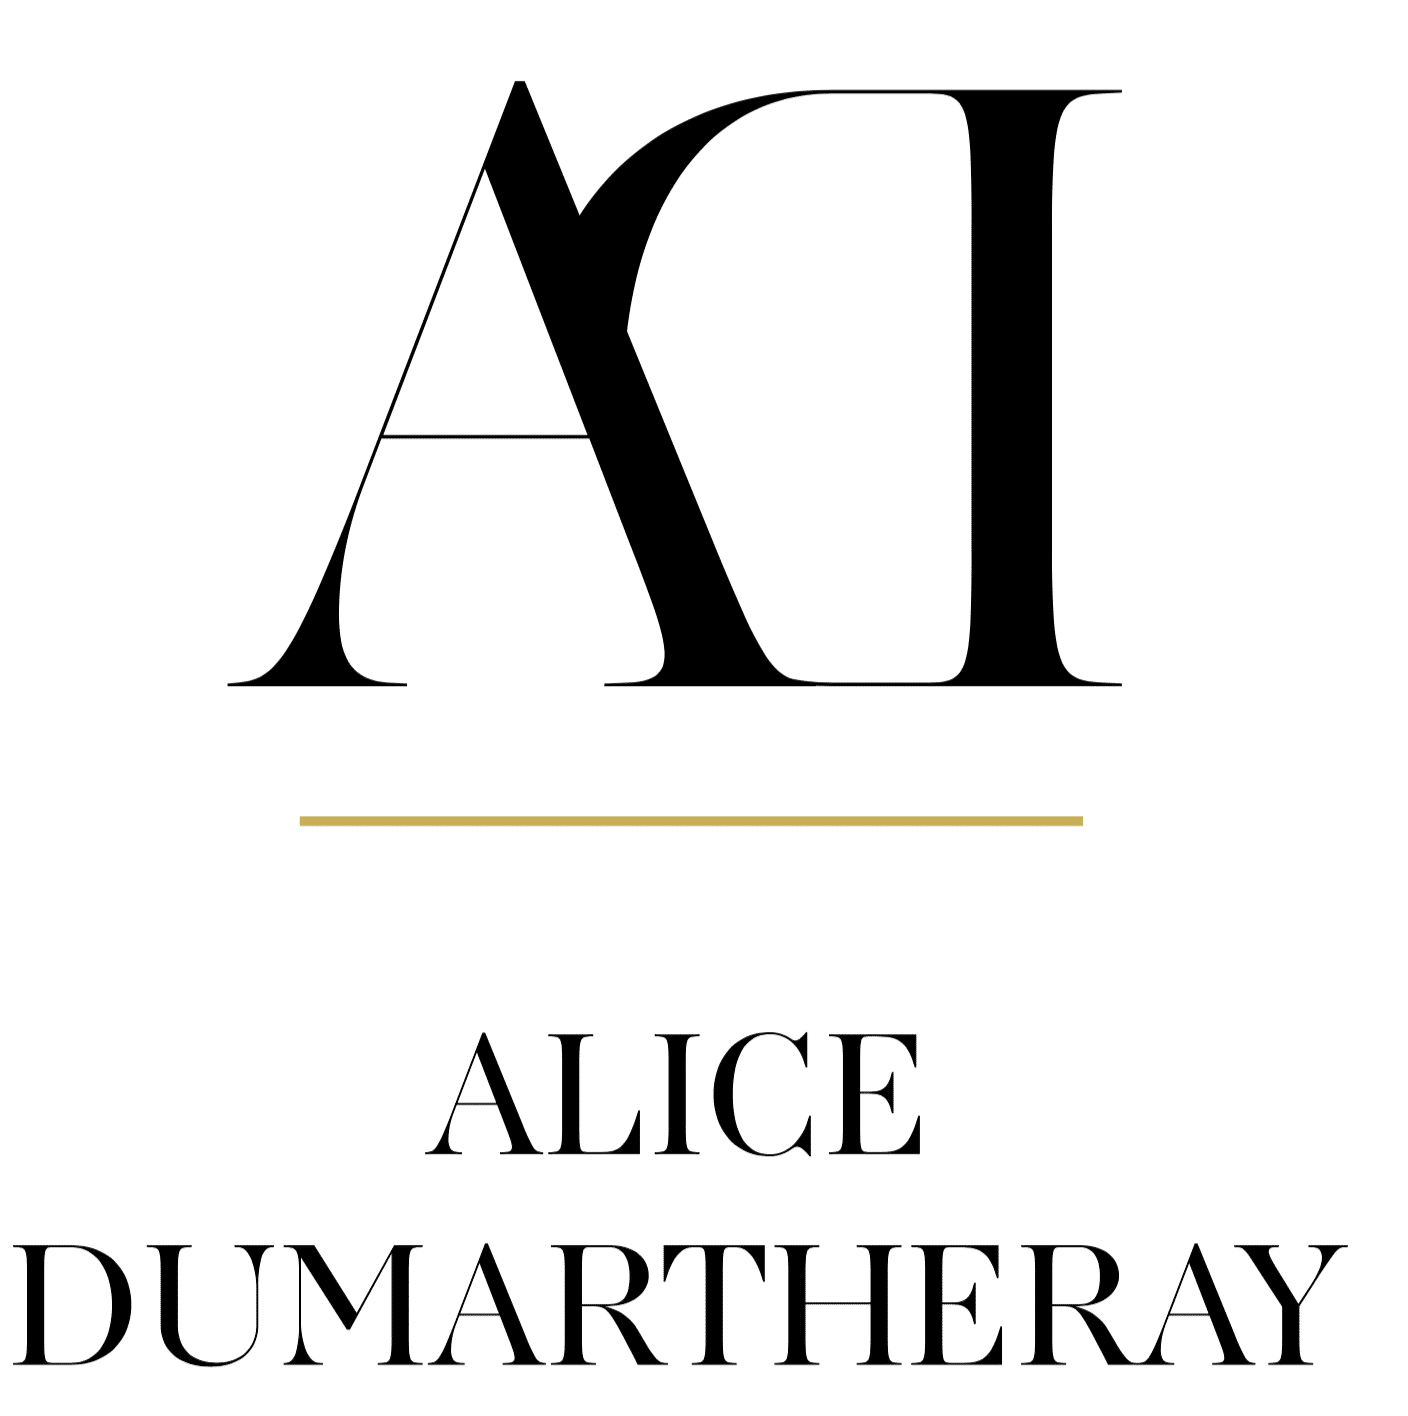 Alice Dumartheray